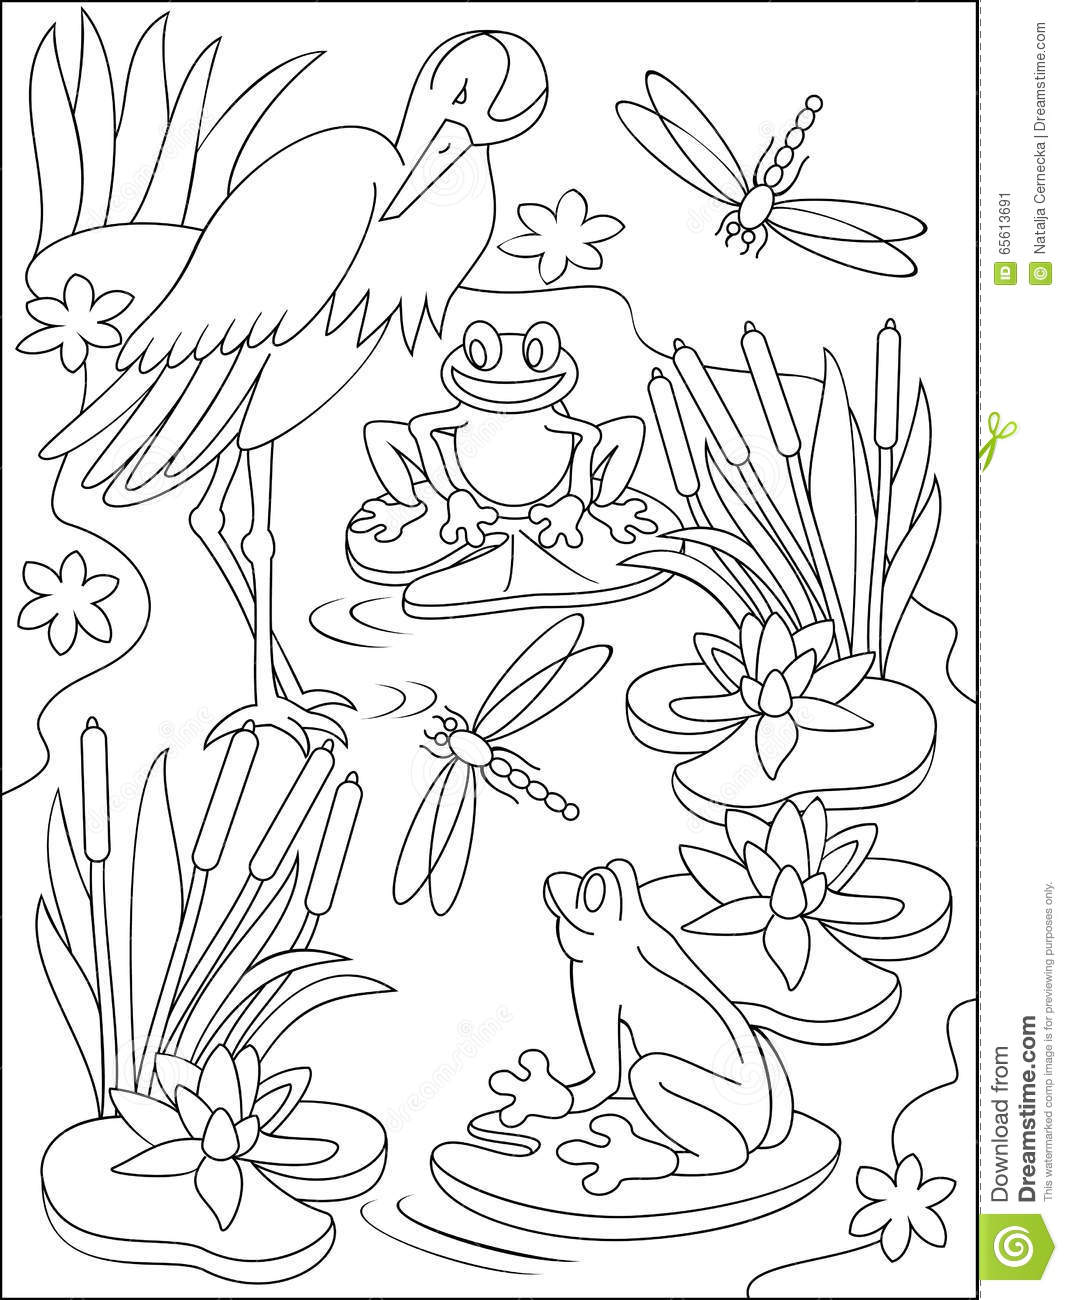 swamp coloring page draw a swamp draw swamps step by step drawing sheets page swamp coloring